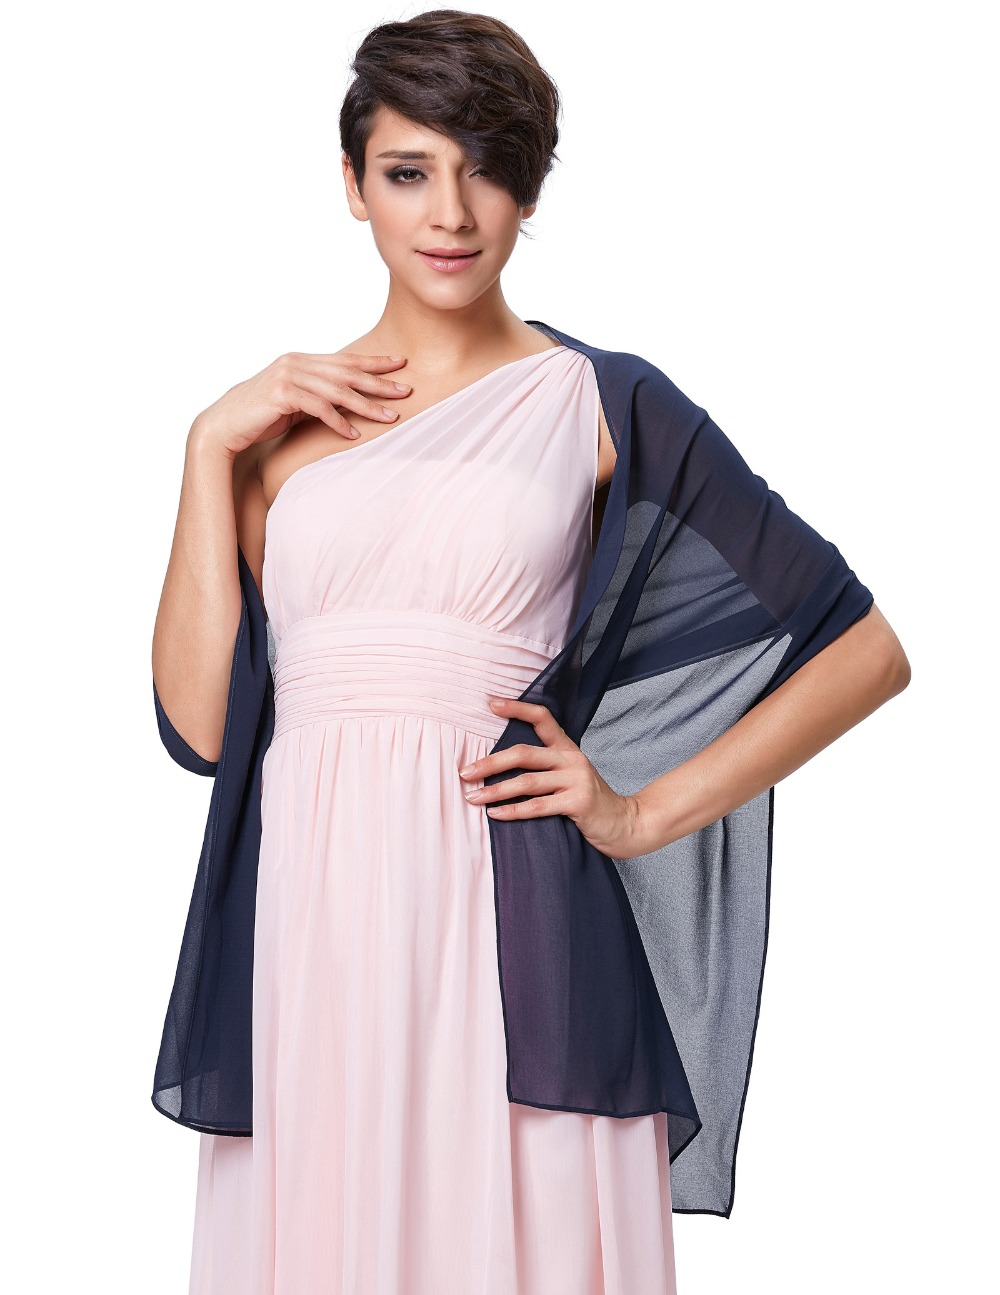 Summer shrugs for women chiffon wedding shawl evening stoles summer shrugs for women chiffon wedding shawl evening stoles accessories special occasion dresses shawls scarves simple design in wedding jackets wrap ombrellifo Image collections